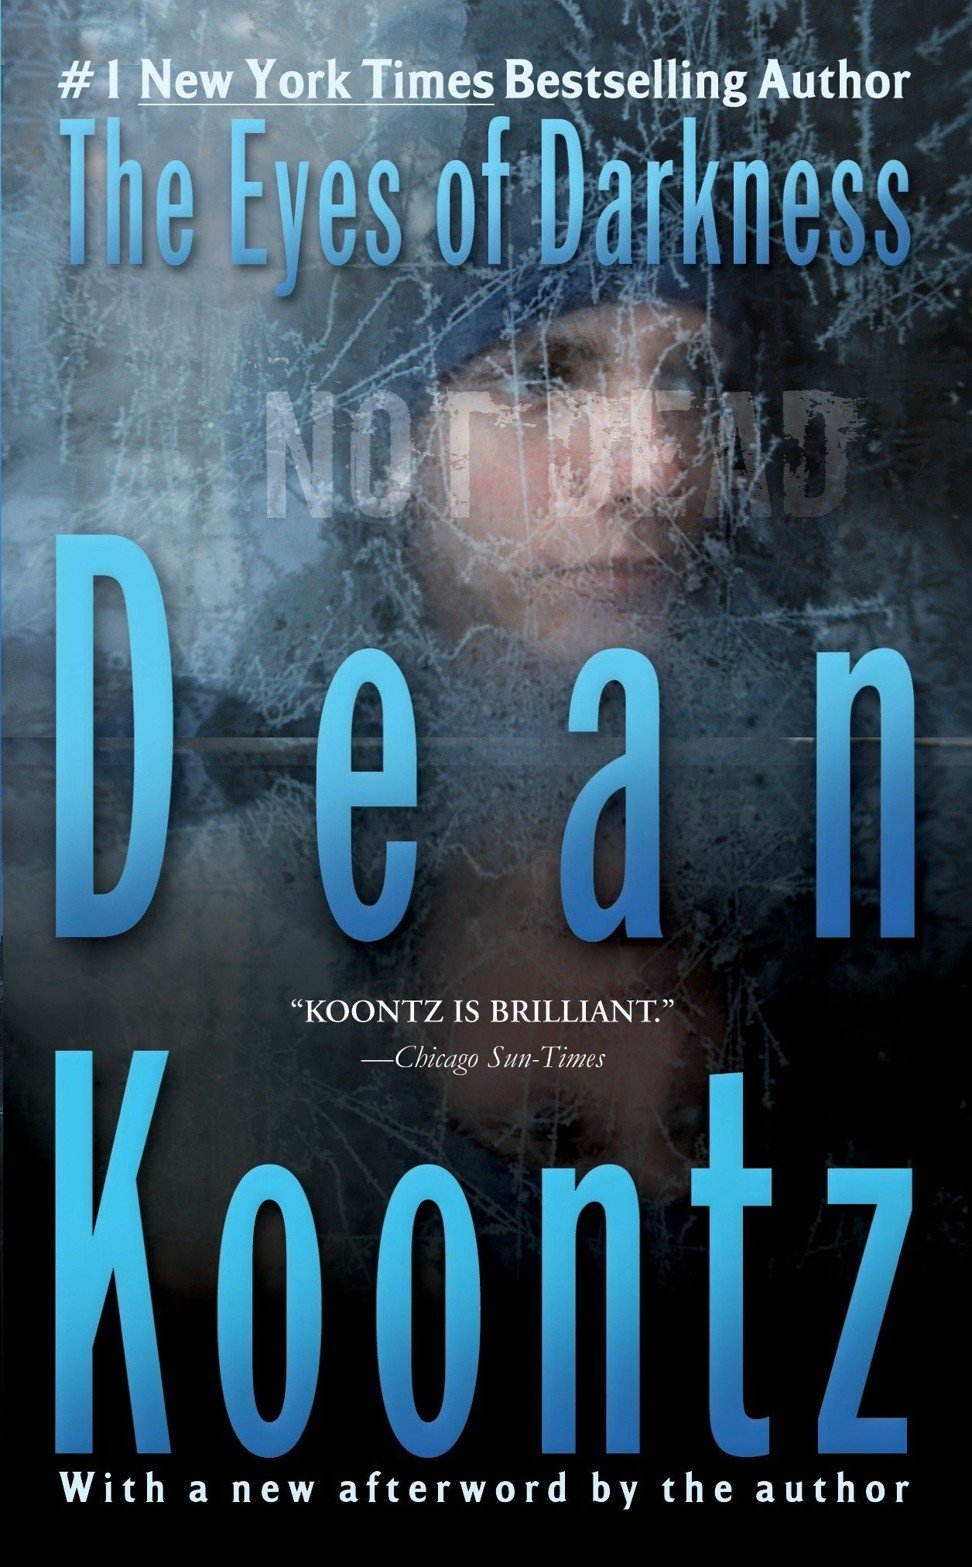 The Eyes of Darkness, by Koontz.